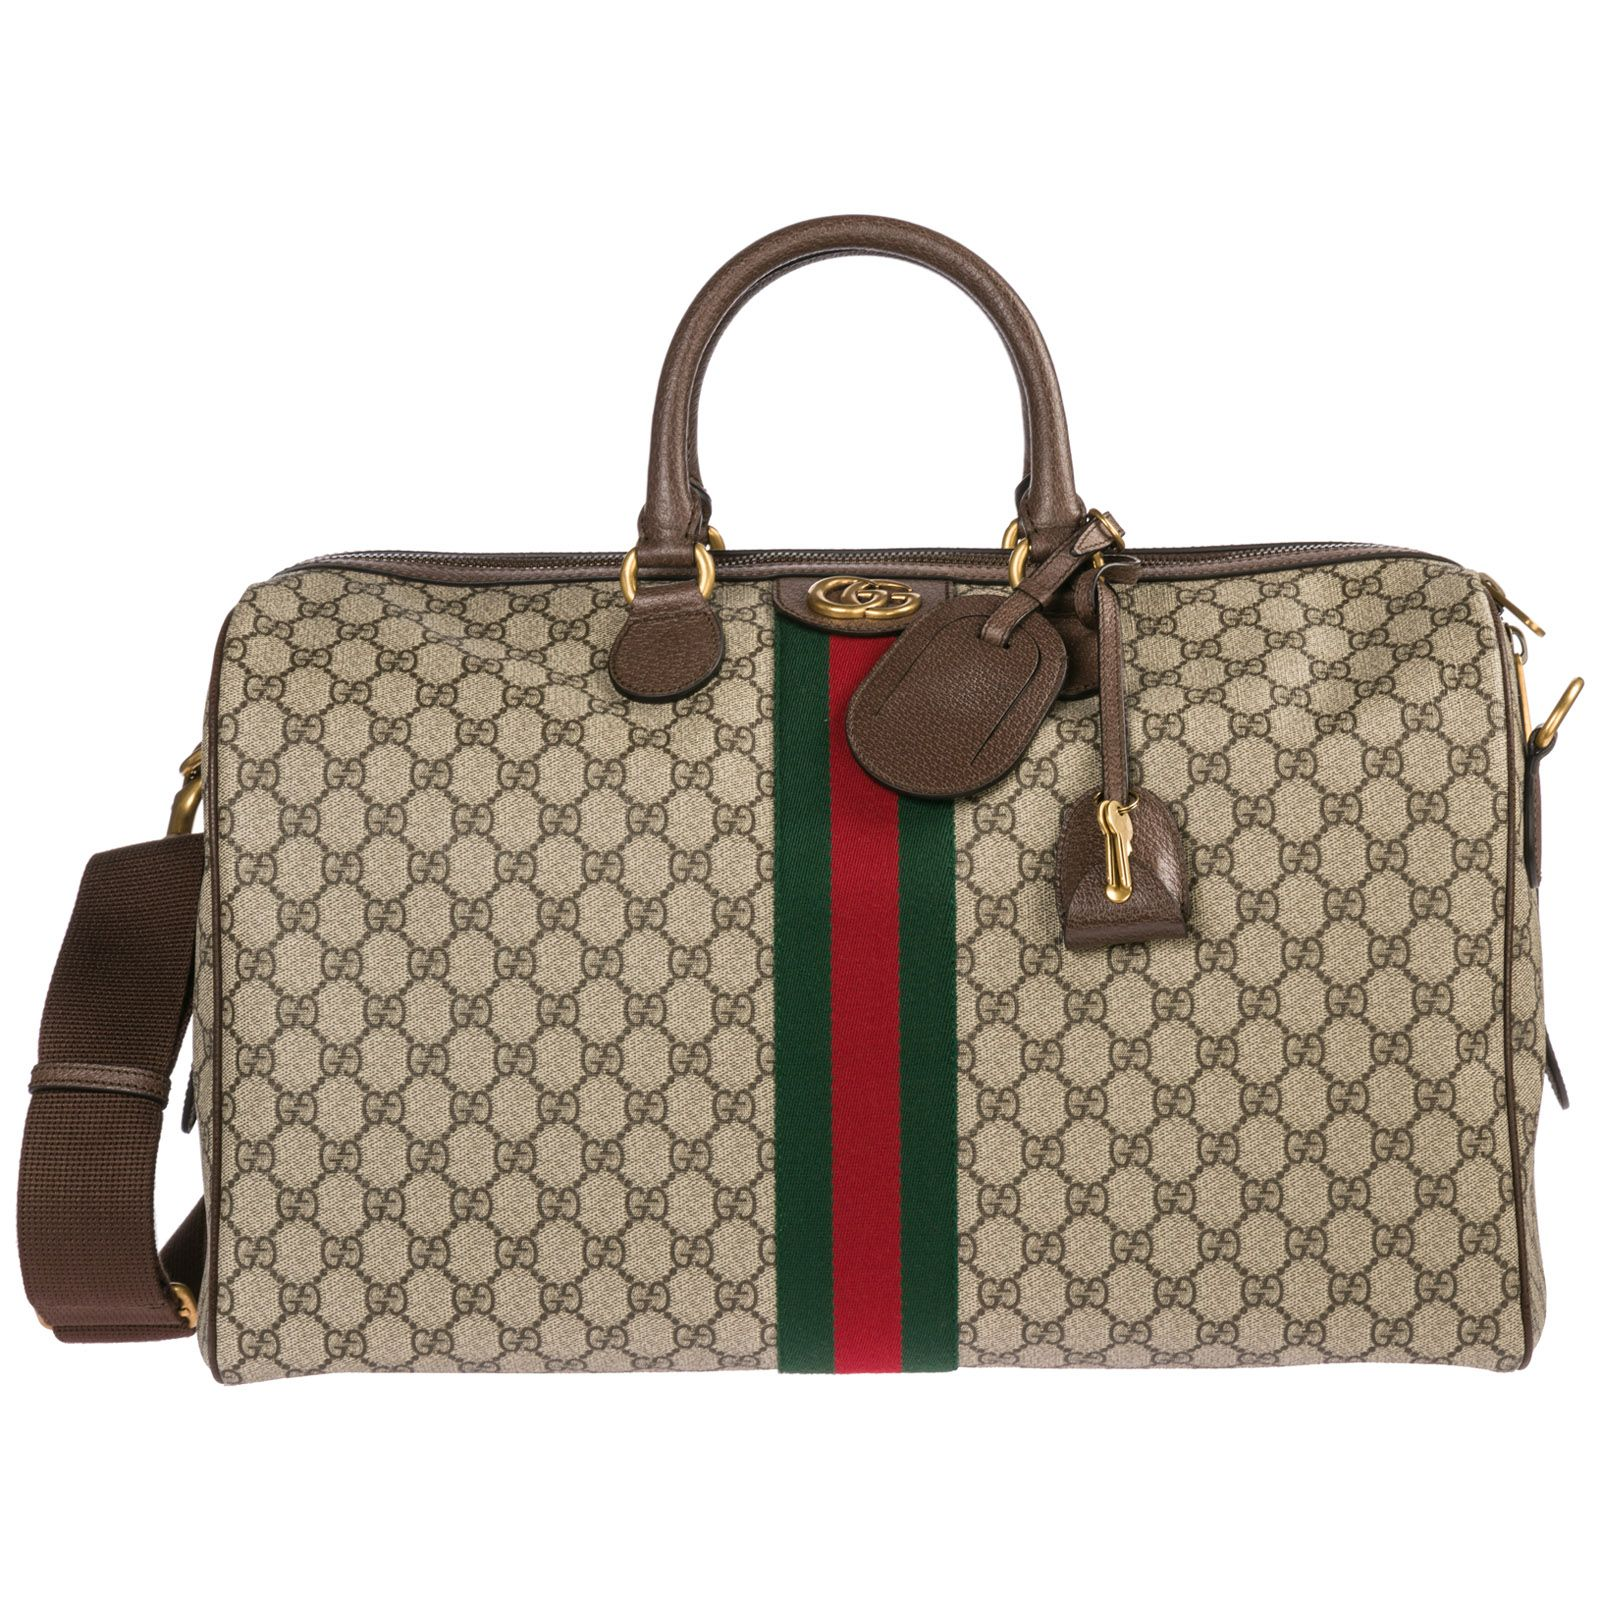 56b9d3cc149b5f GUCCI GENUINE LEATHER TRAVEL DUFFLE WEEKEND SHOULDER BAG OPHIDIA. #gucci # bags #leather #travel bags #weekend